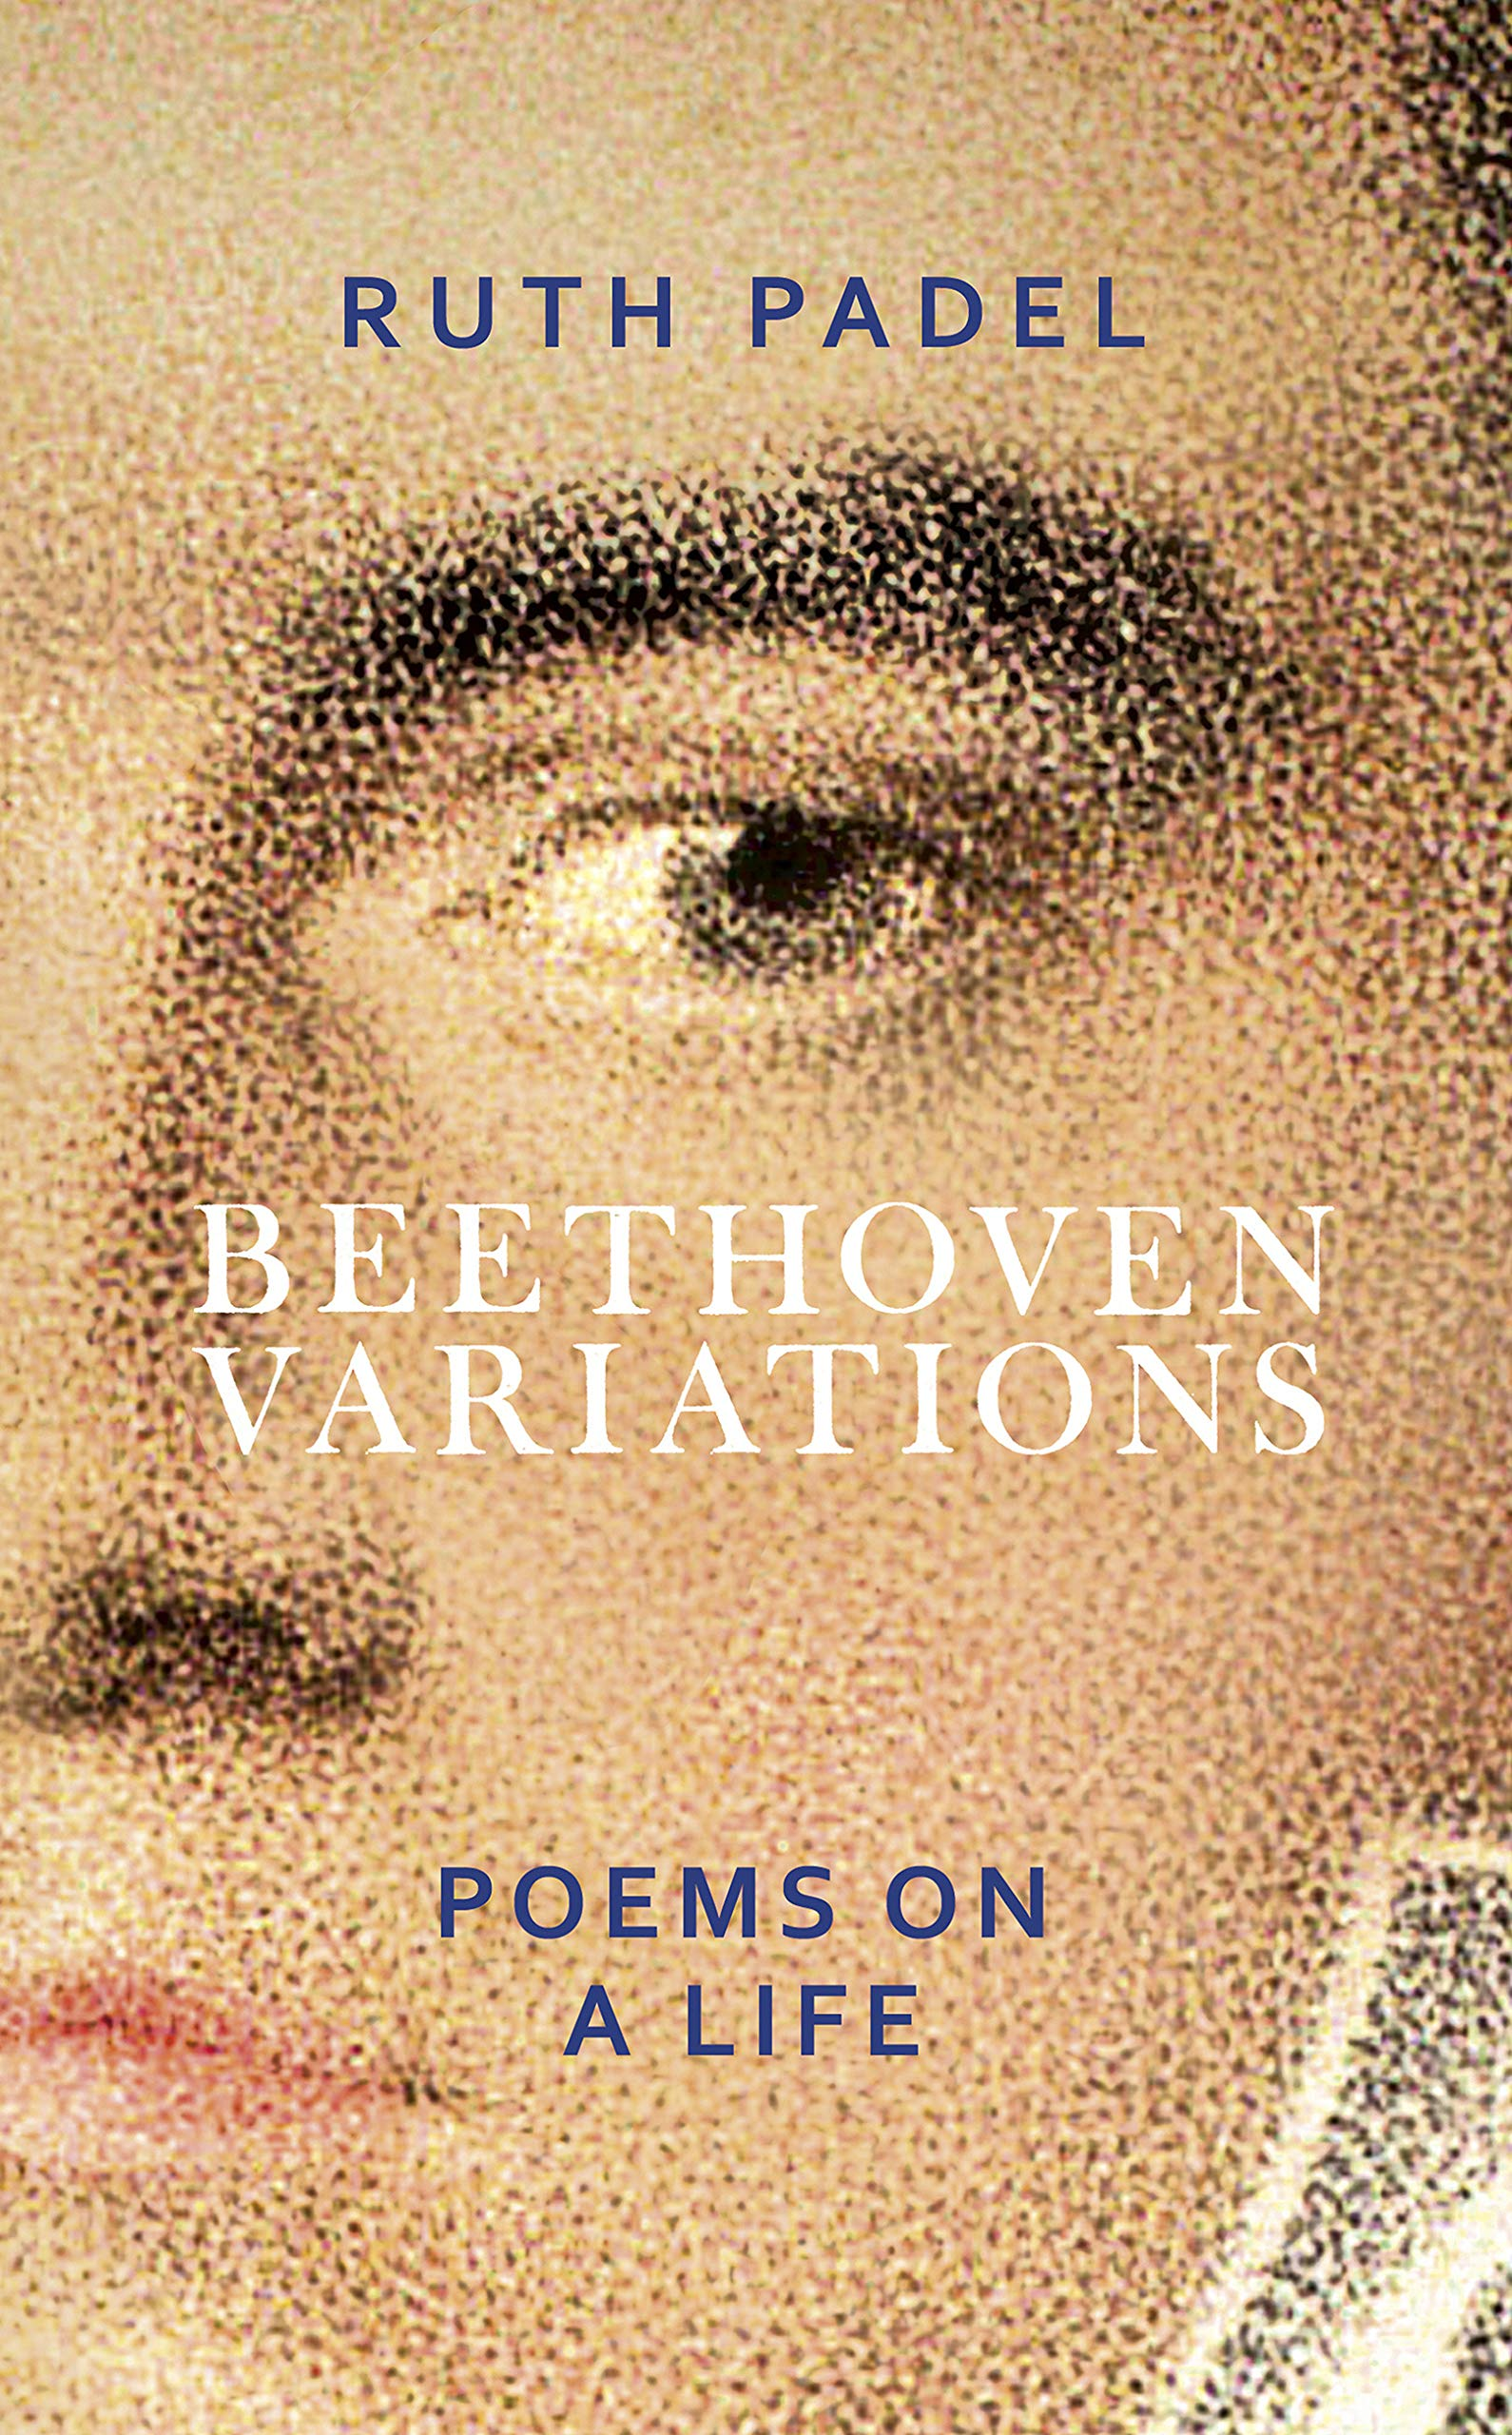 Amazon.com: Beethoven Variations: Poems on a Life ...